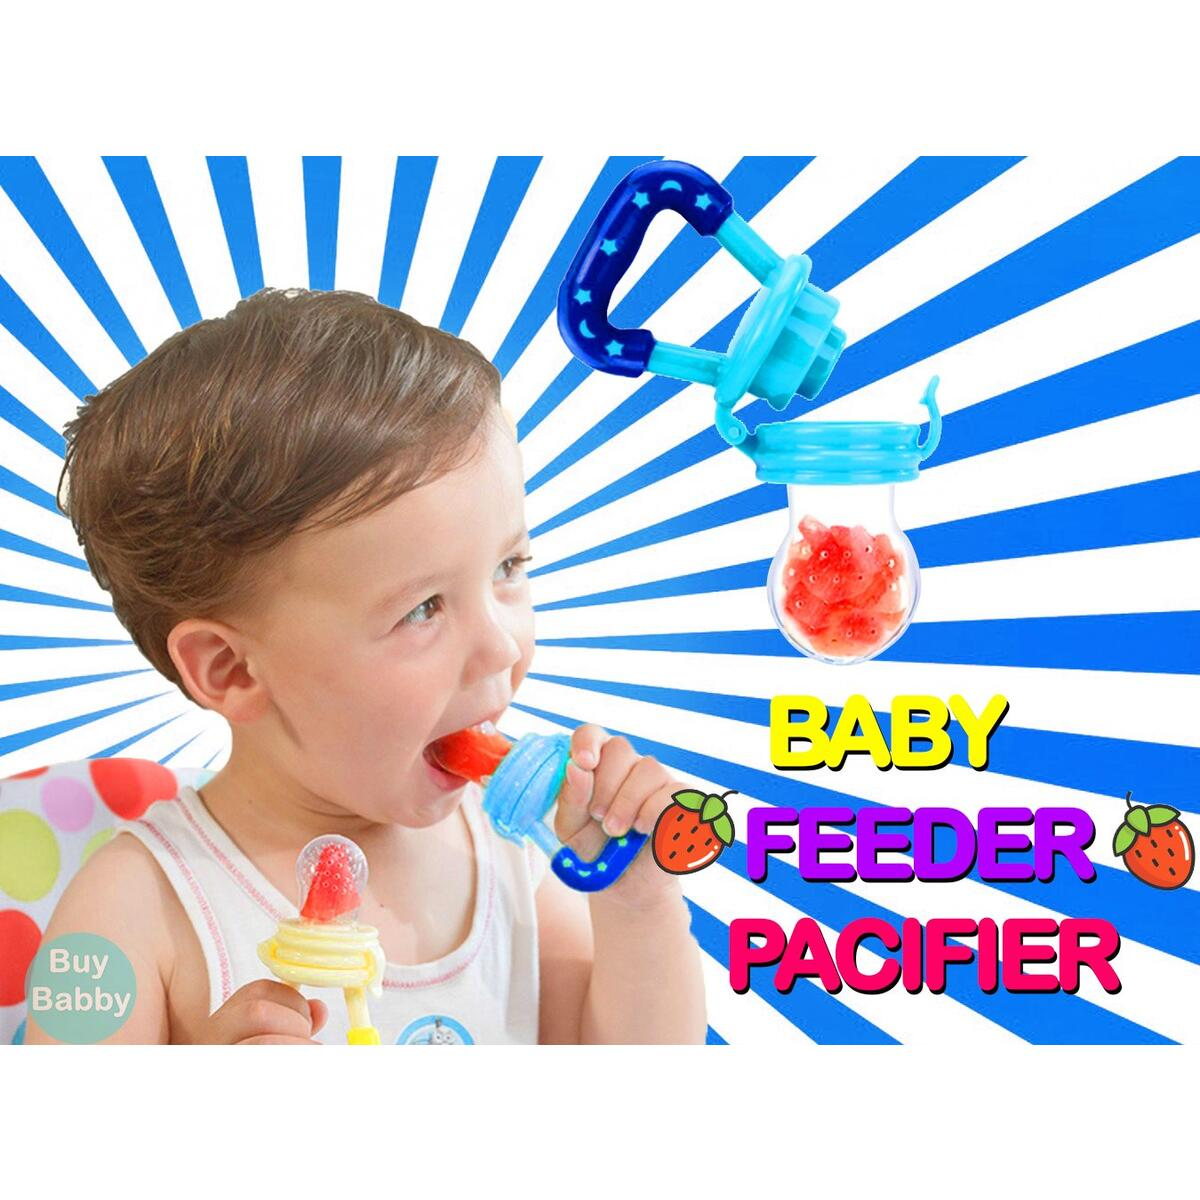 Fruit Feeder Pacifier Fresh Food Feeder, Infant Fruit Teething Toy, Silicone Pouches for Toddlers & Kids by Buy Babby™